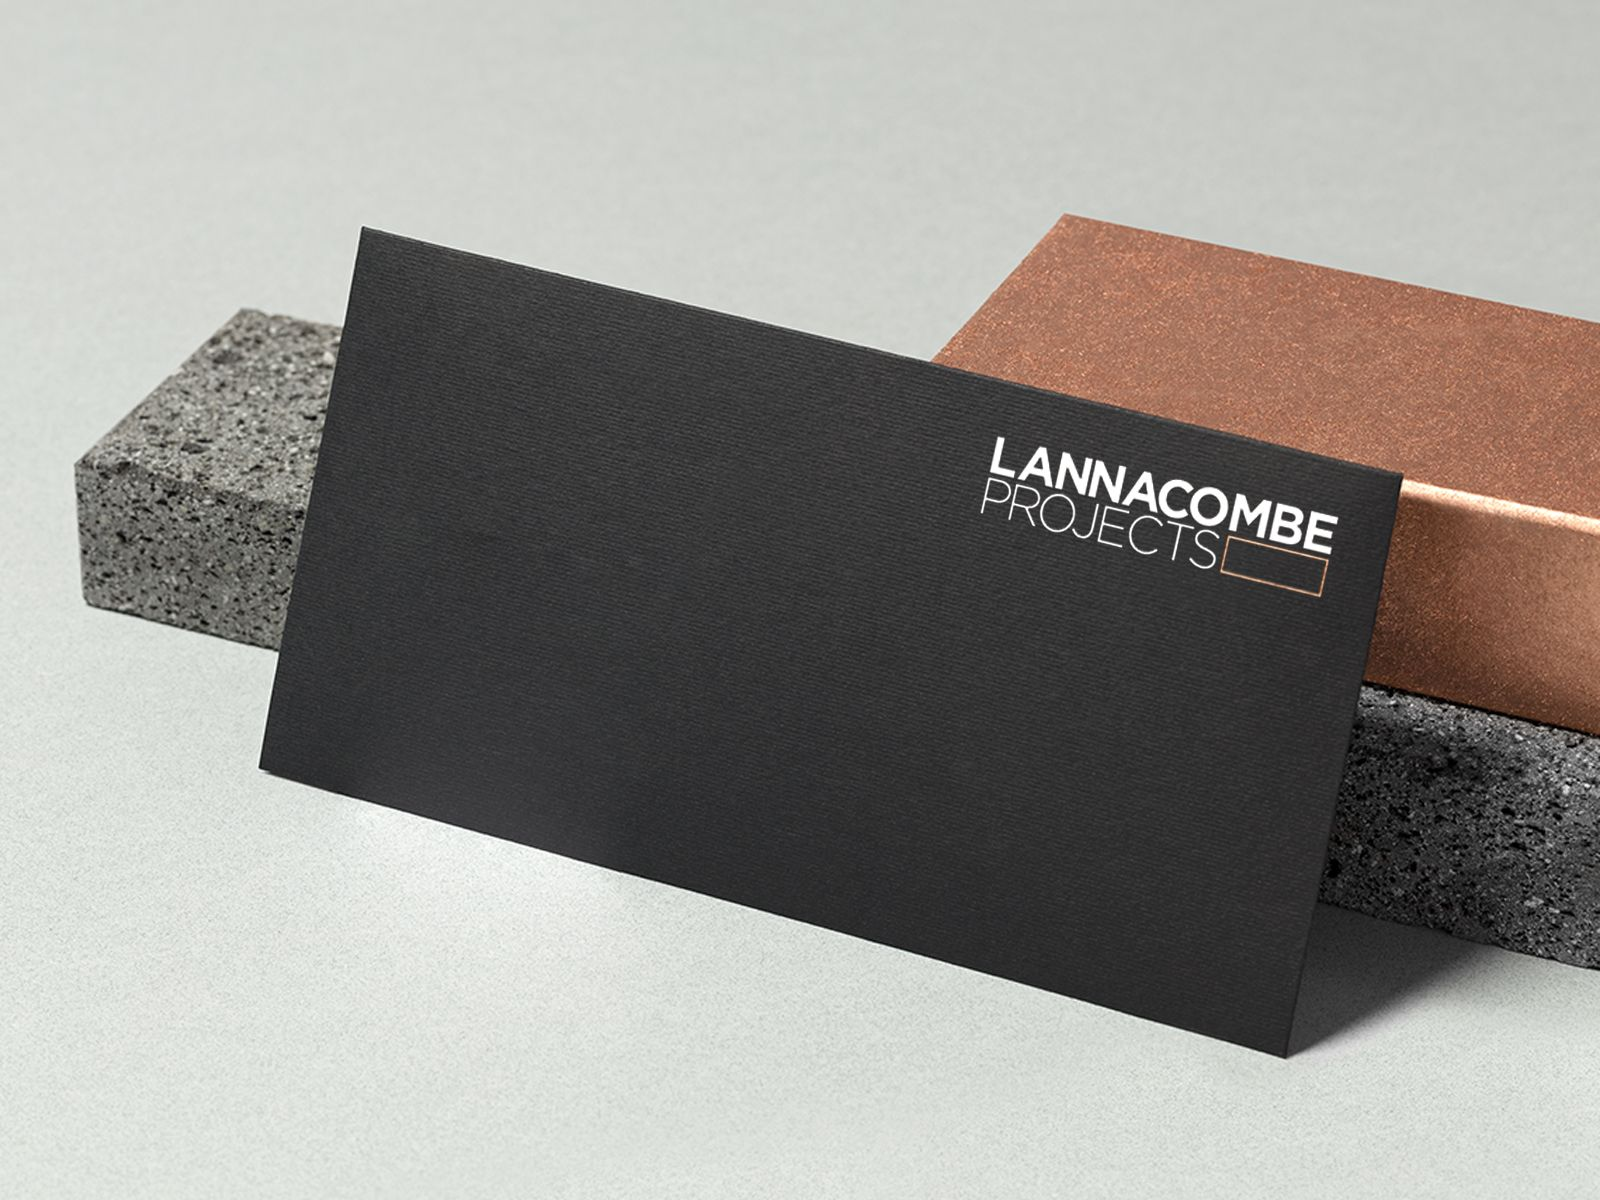 Lannacombe Projects